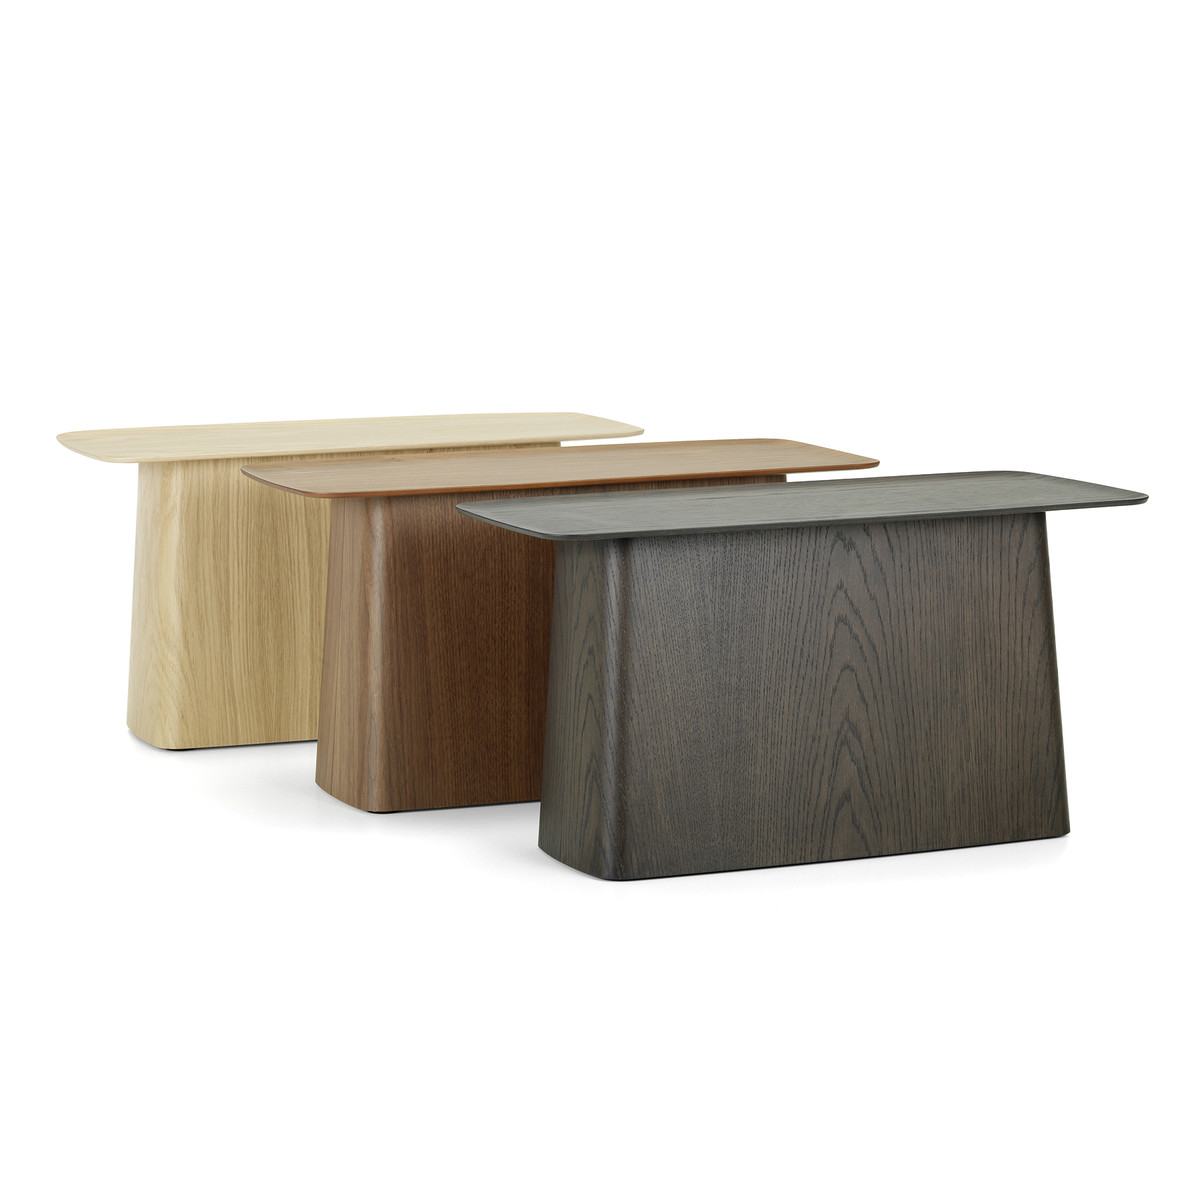 Buy the Wooden Side Tables from Vitra online